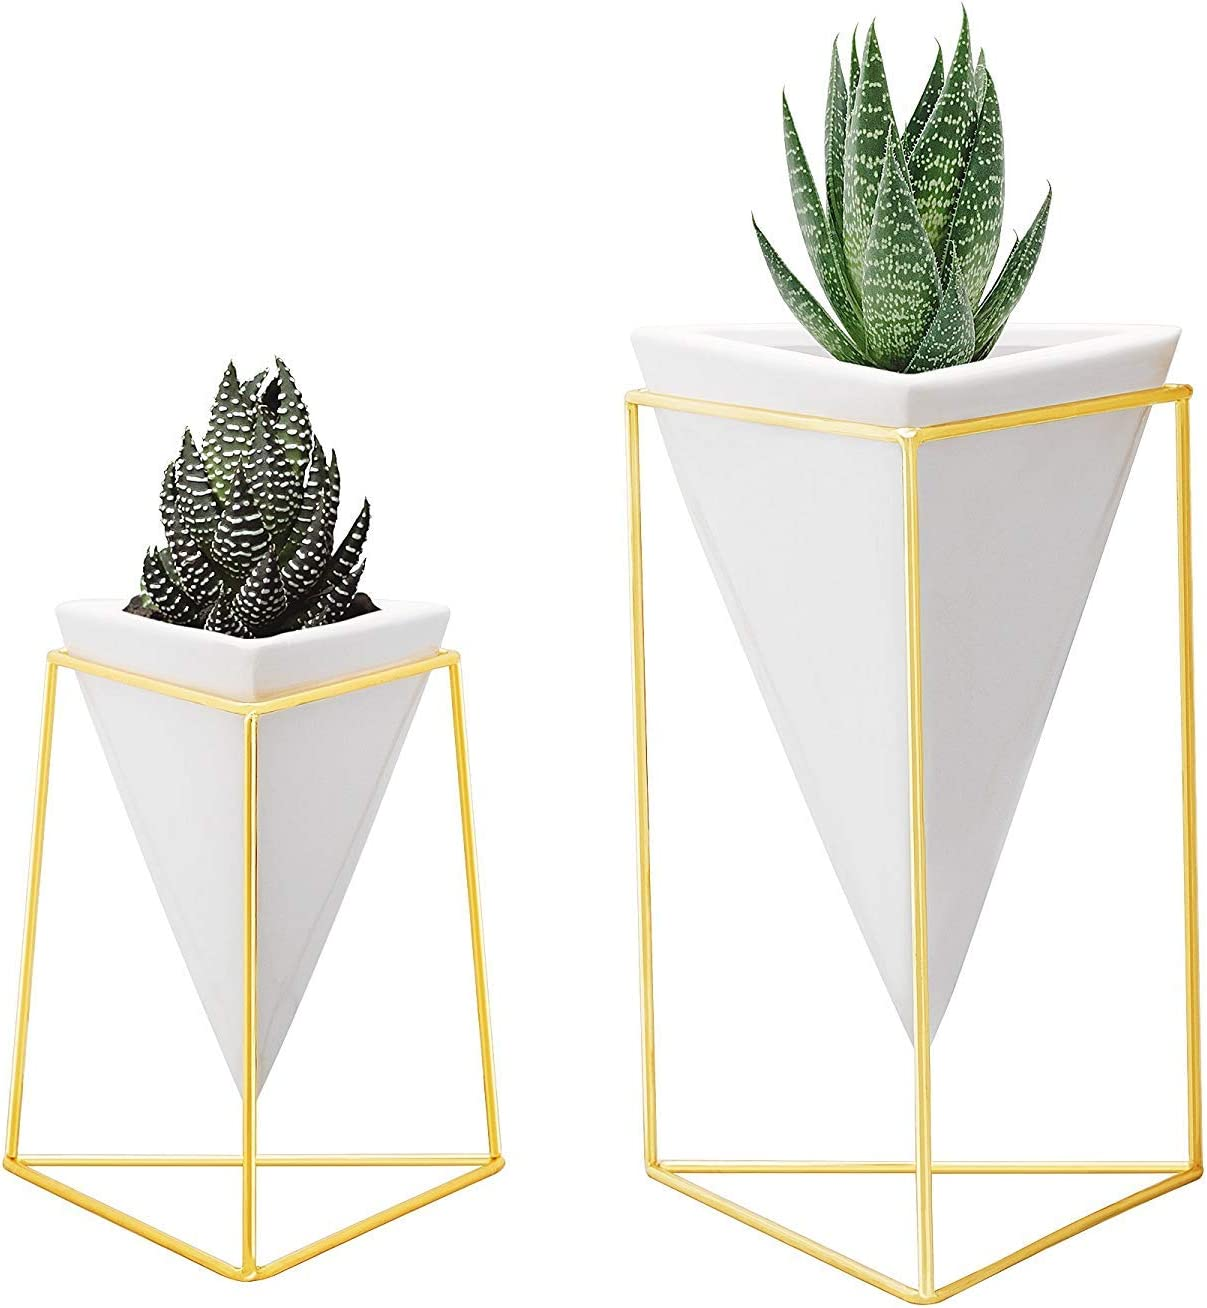 Nellam Modern Geometric Table Vases – Set of 2, 1 x Large, 1 x Small, White Ceramic Porcelain Style Baskets, with Decorative Brass Wire Frames – Accents Blue, Turquoise, and Yellow Flowers